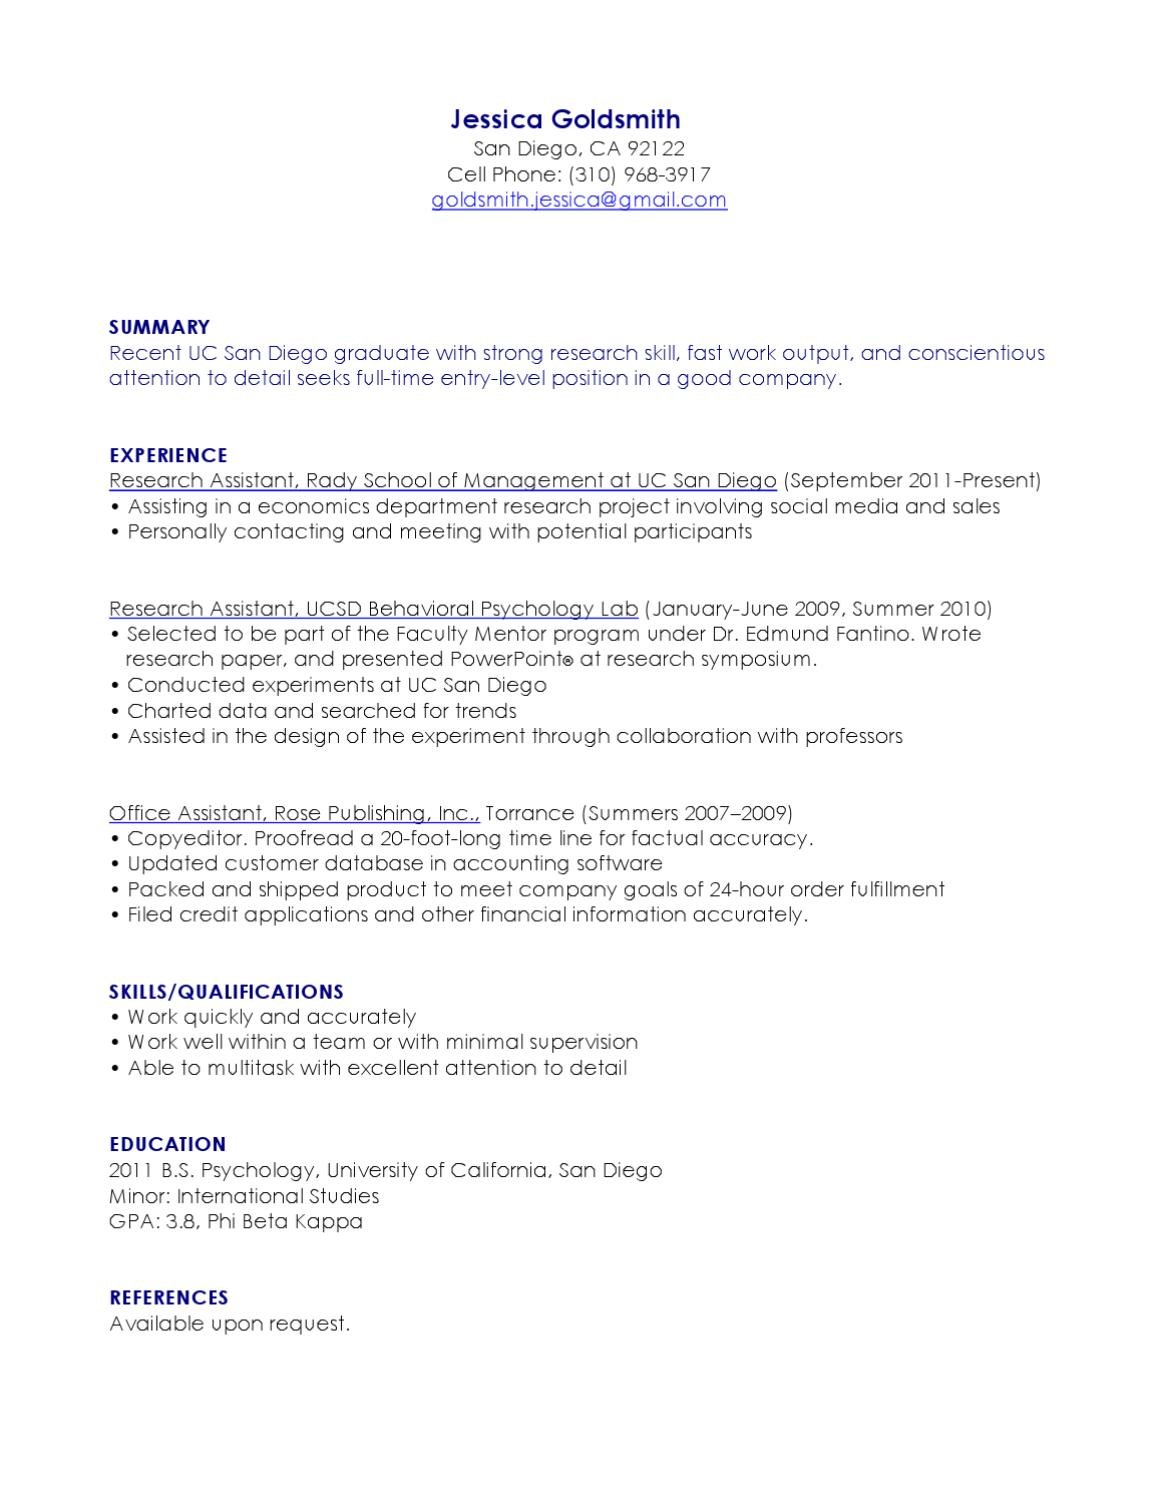 Resume Jessica Goldsmith San Diego Entry-Level Research Assistant by ...